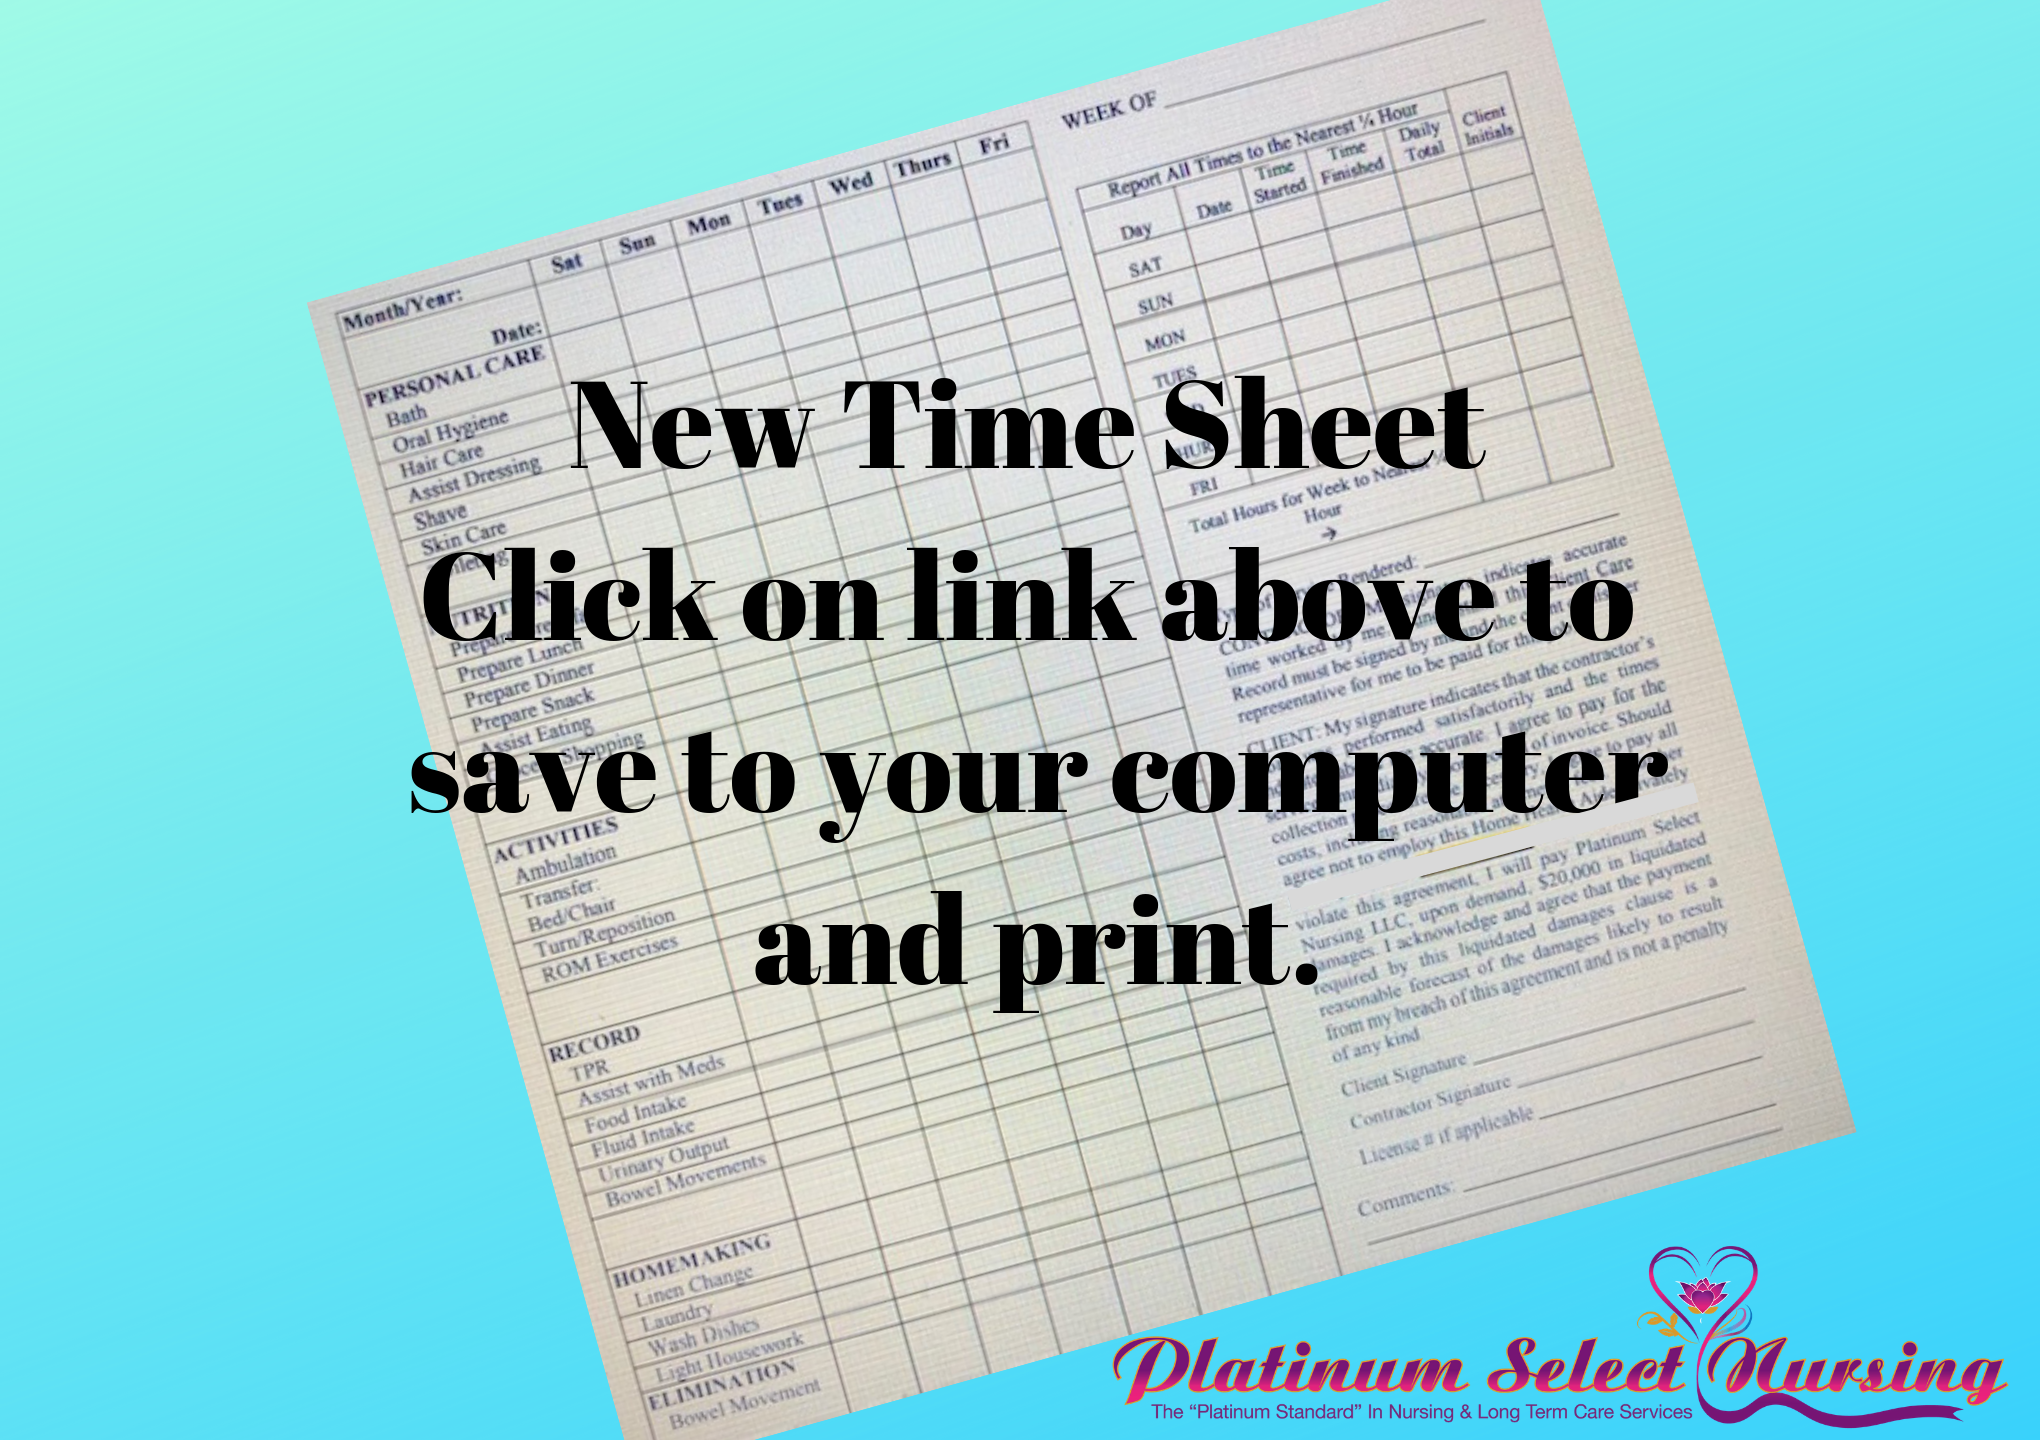 Platinum Select New Timesheets